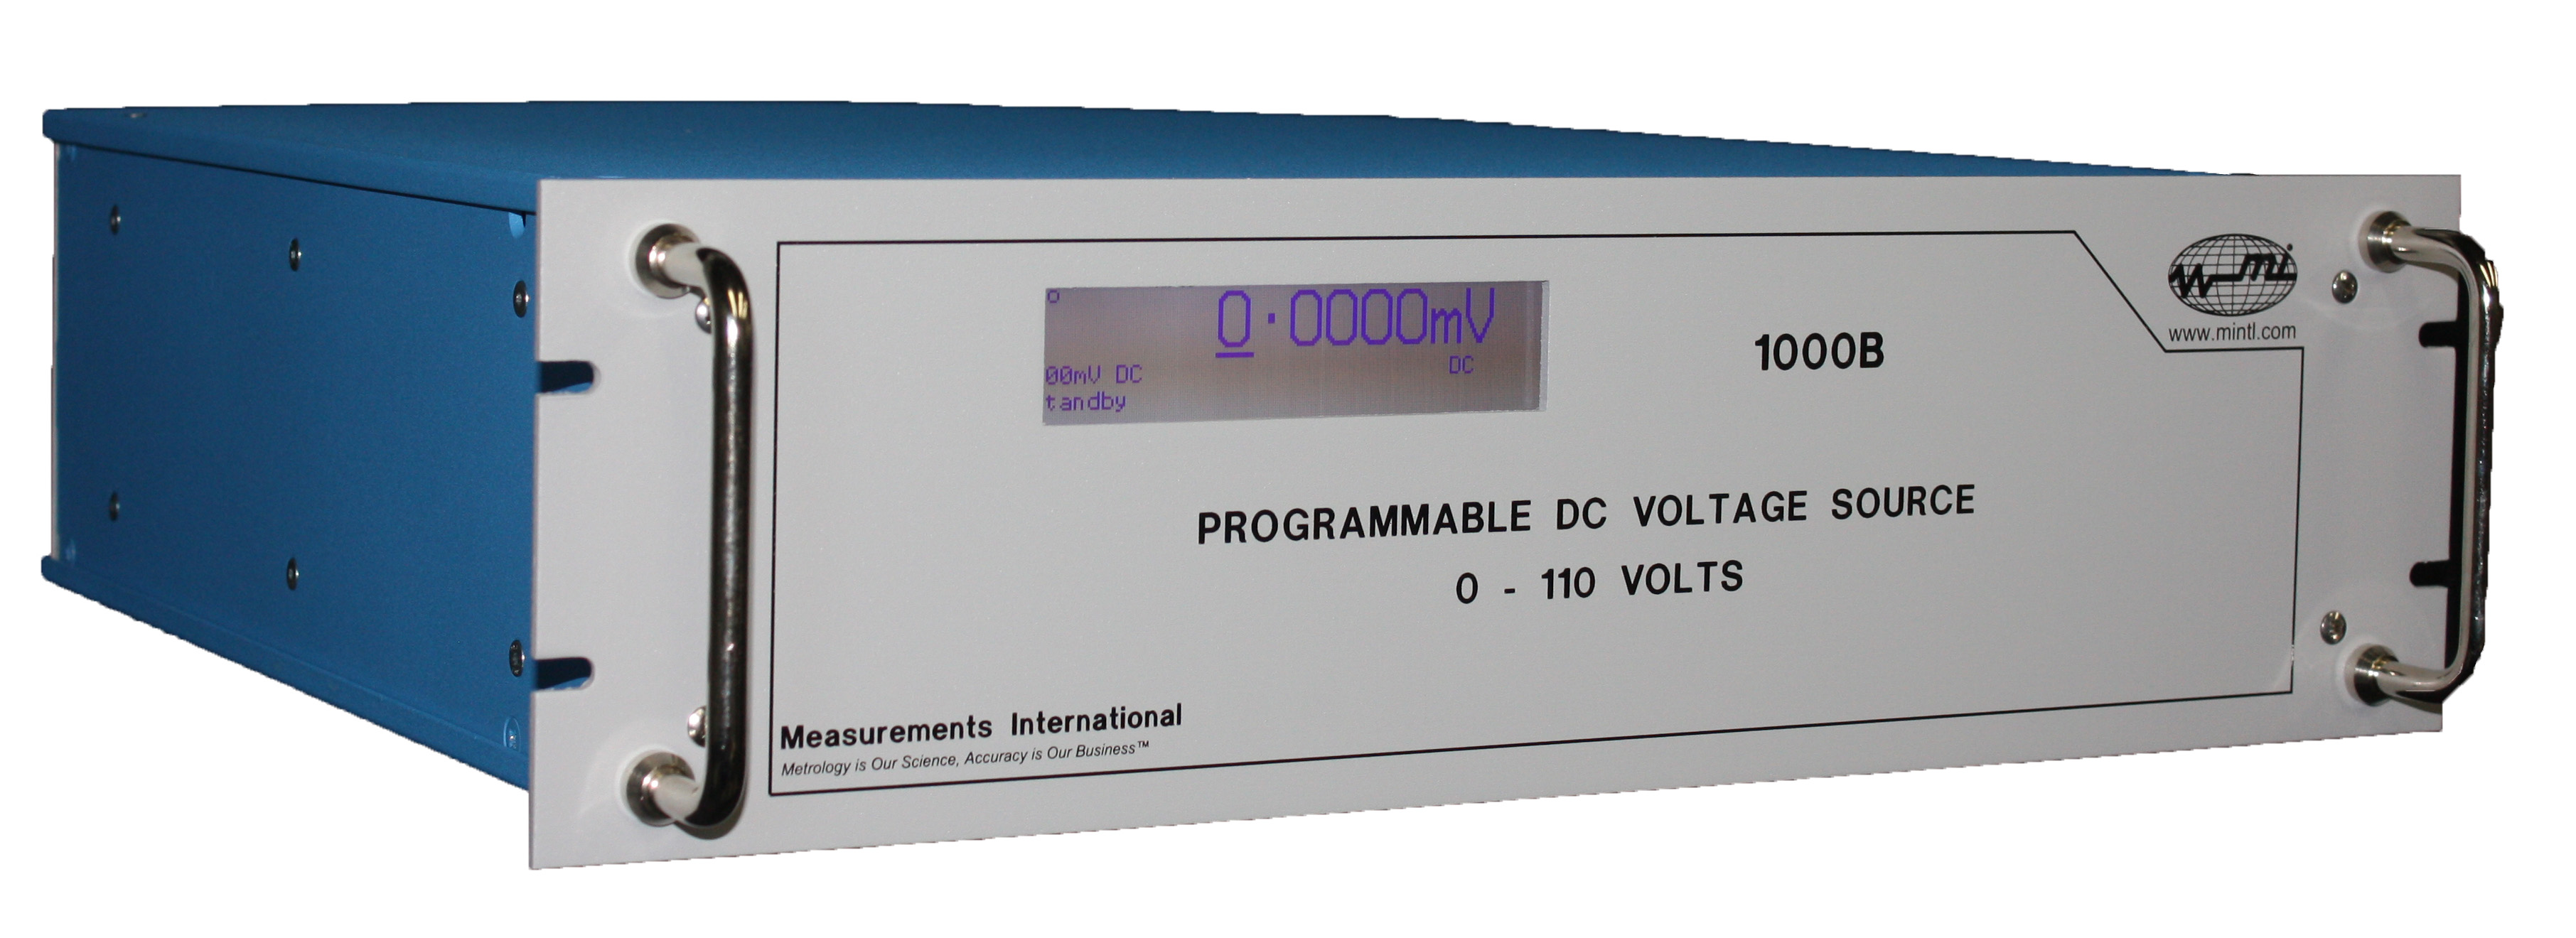 1000B Programmable DC Voltage Source